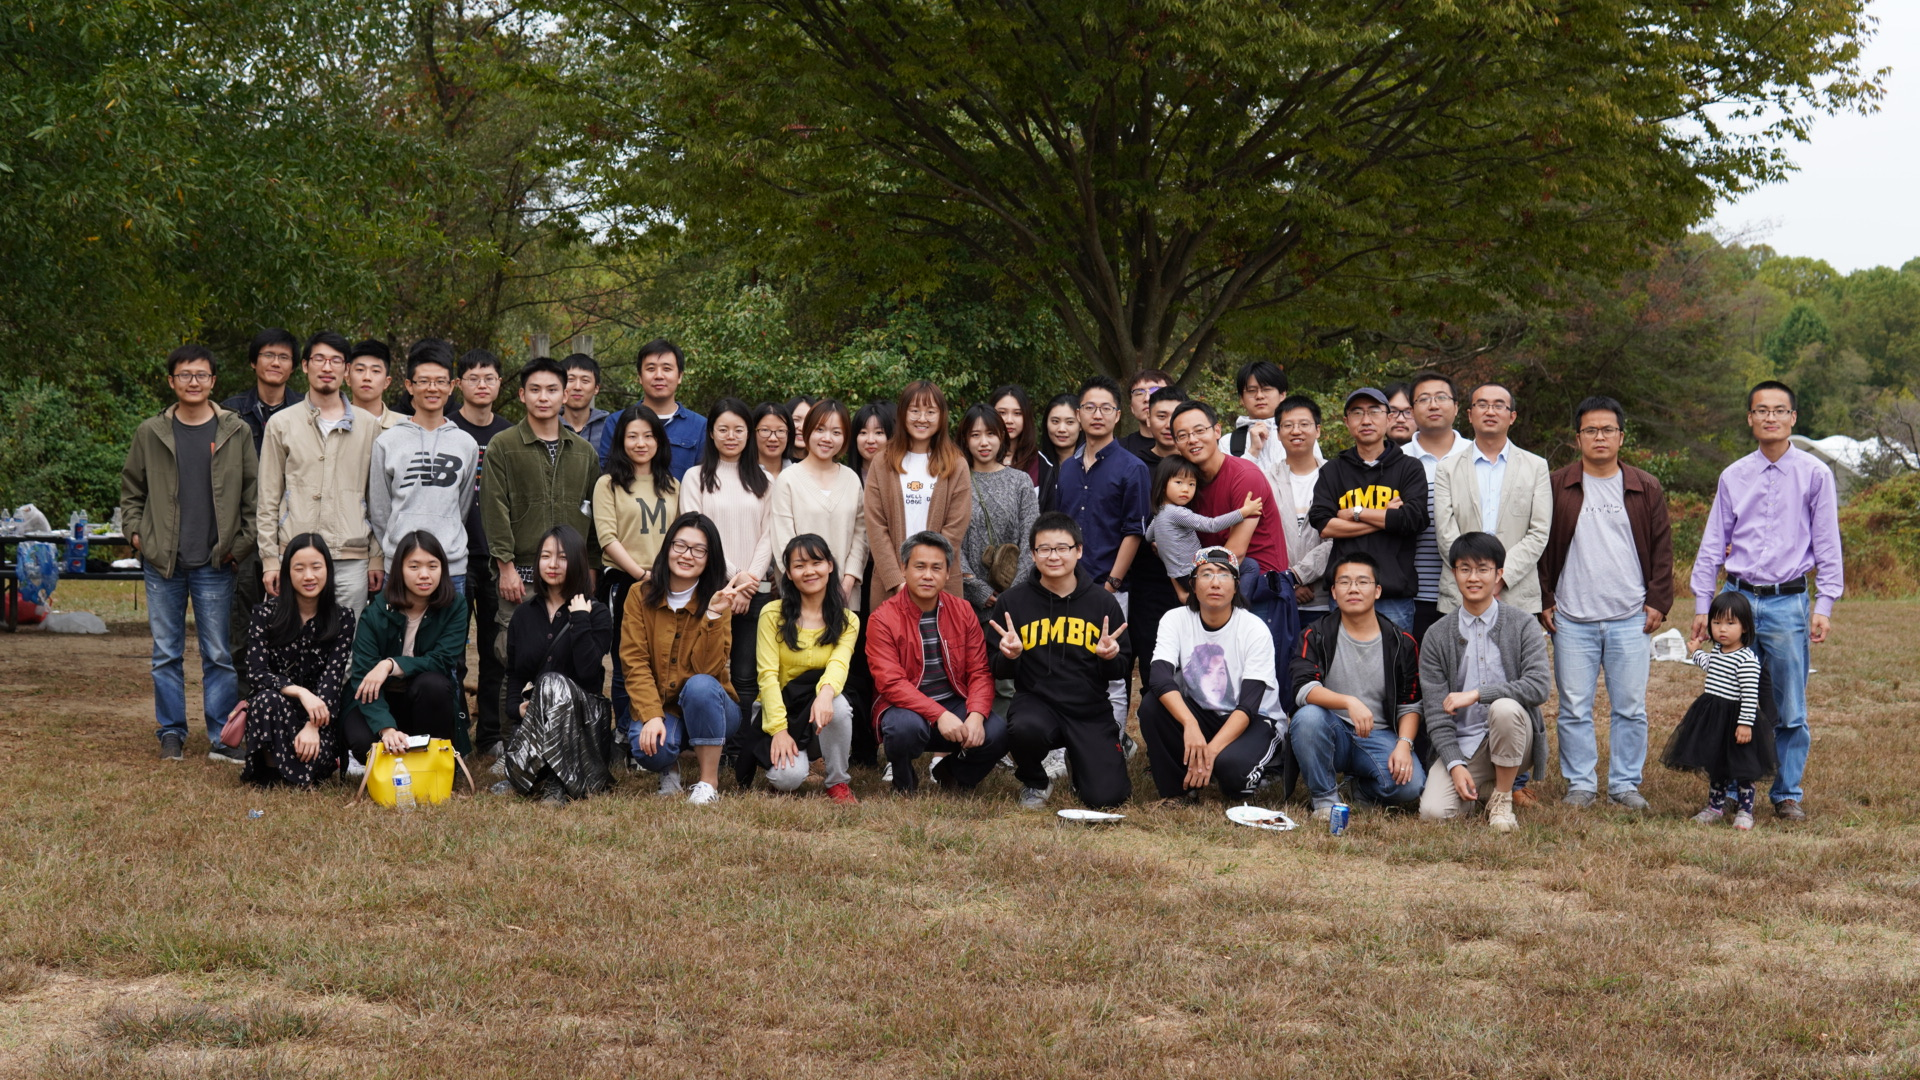 Chinese Student Scholar Association Picnic